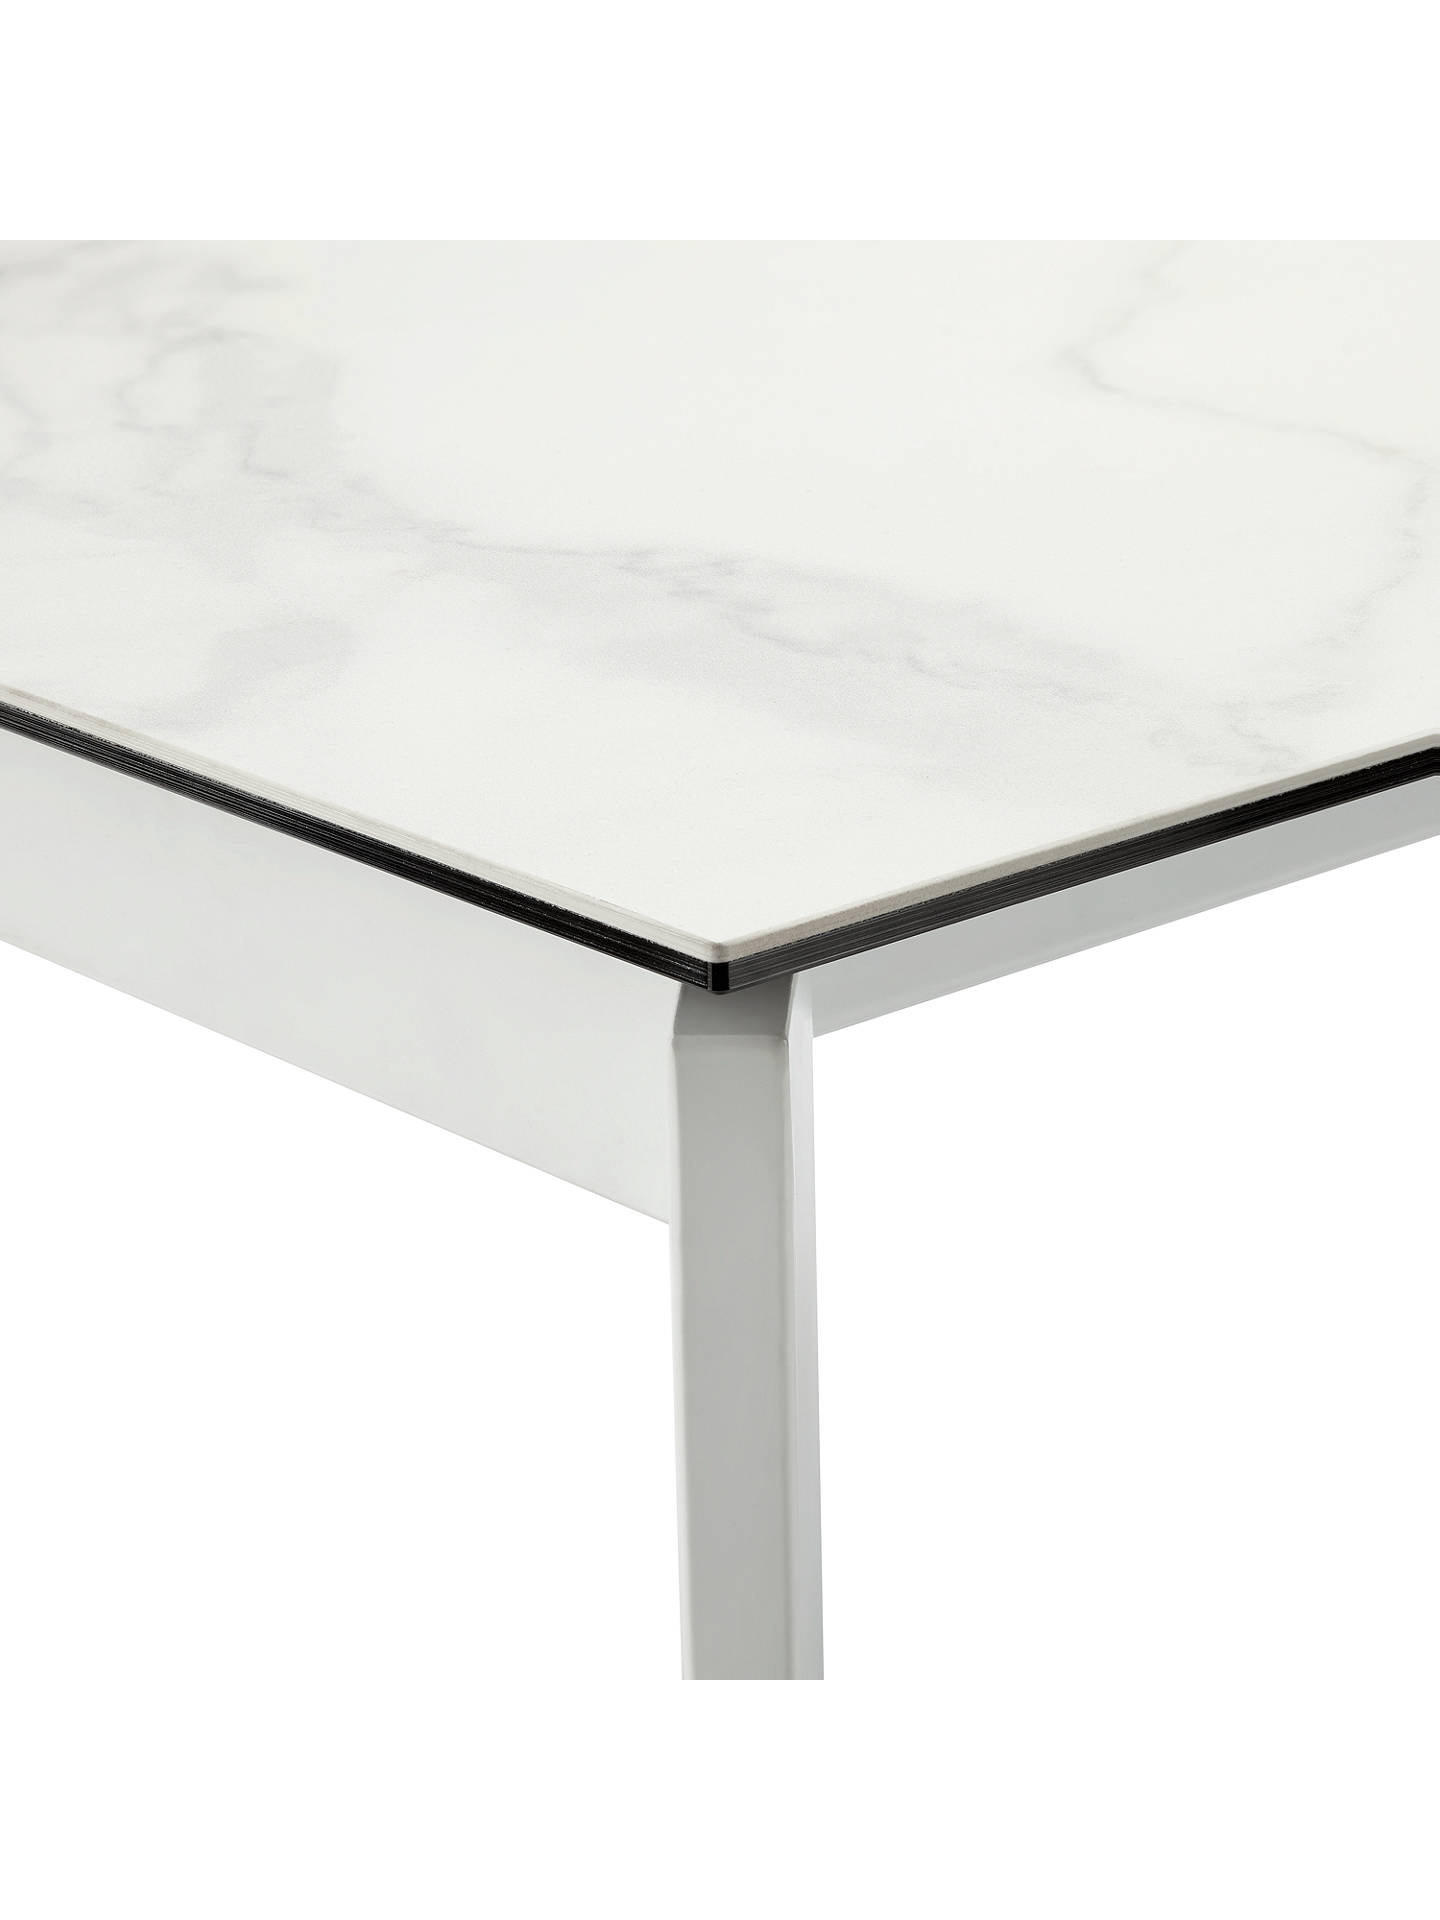 BuyJohn Lewis & Partners Odyssey 6-10 Seater Ceramic Top Extending Dining Table, White/Marbled Online at johnlewis.com